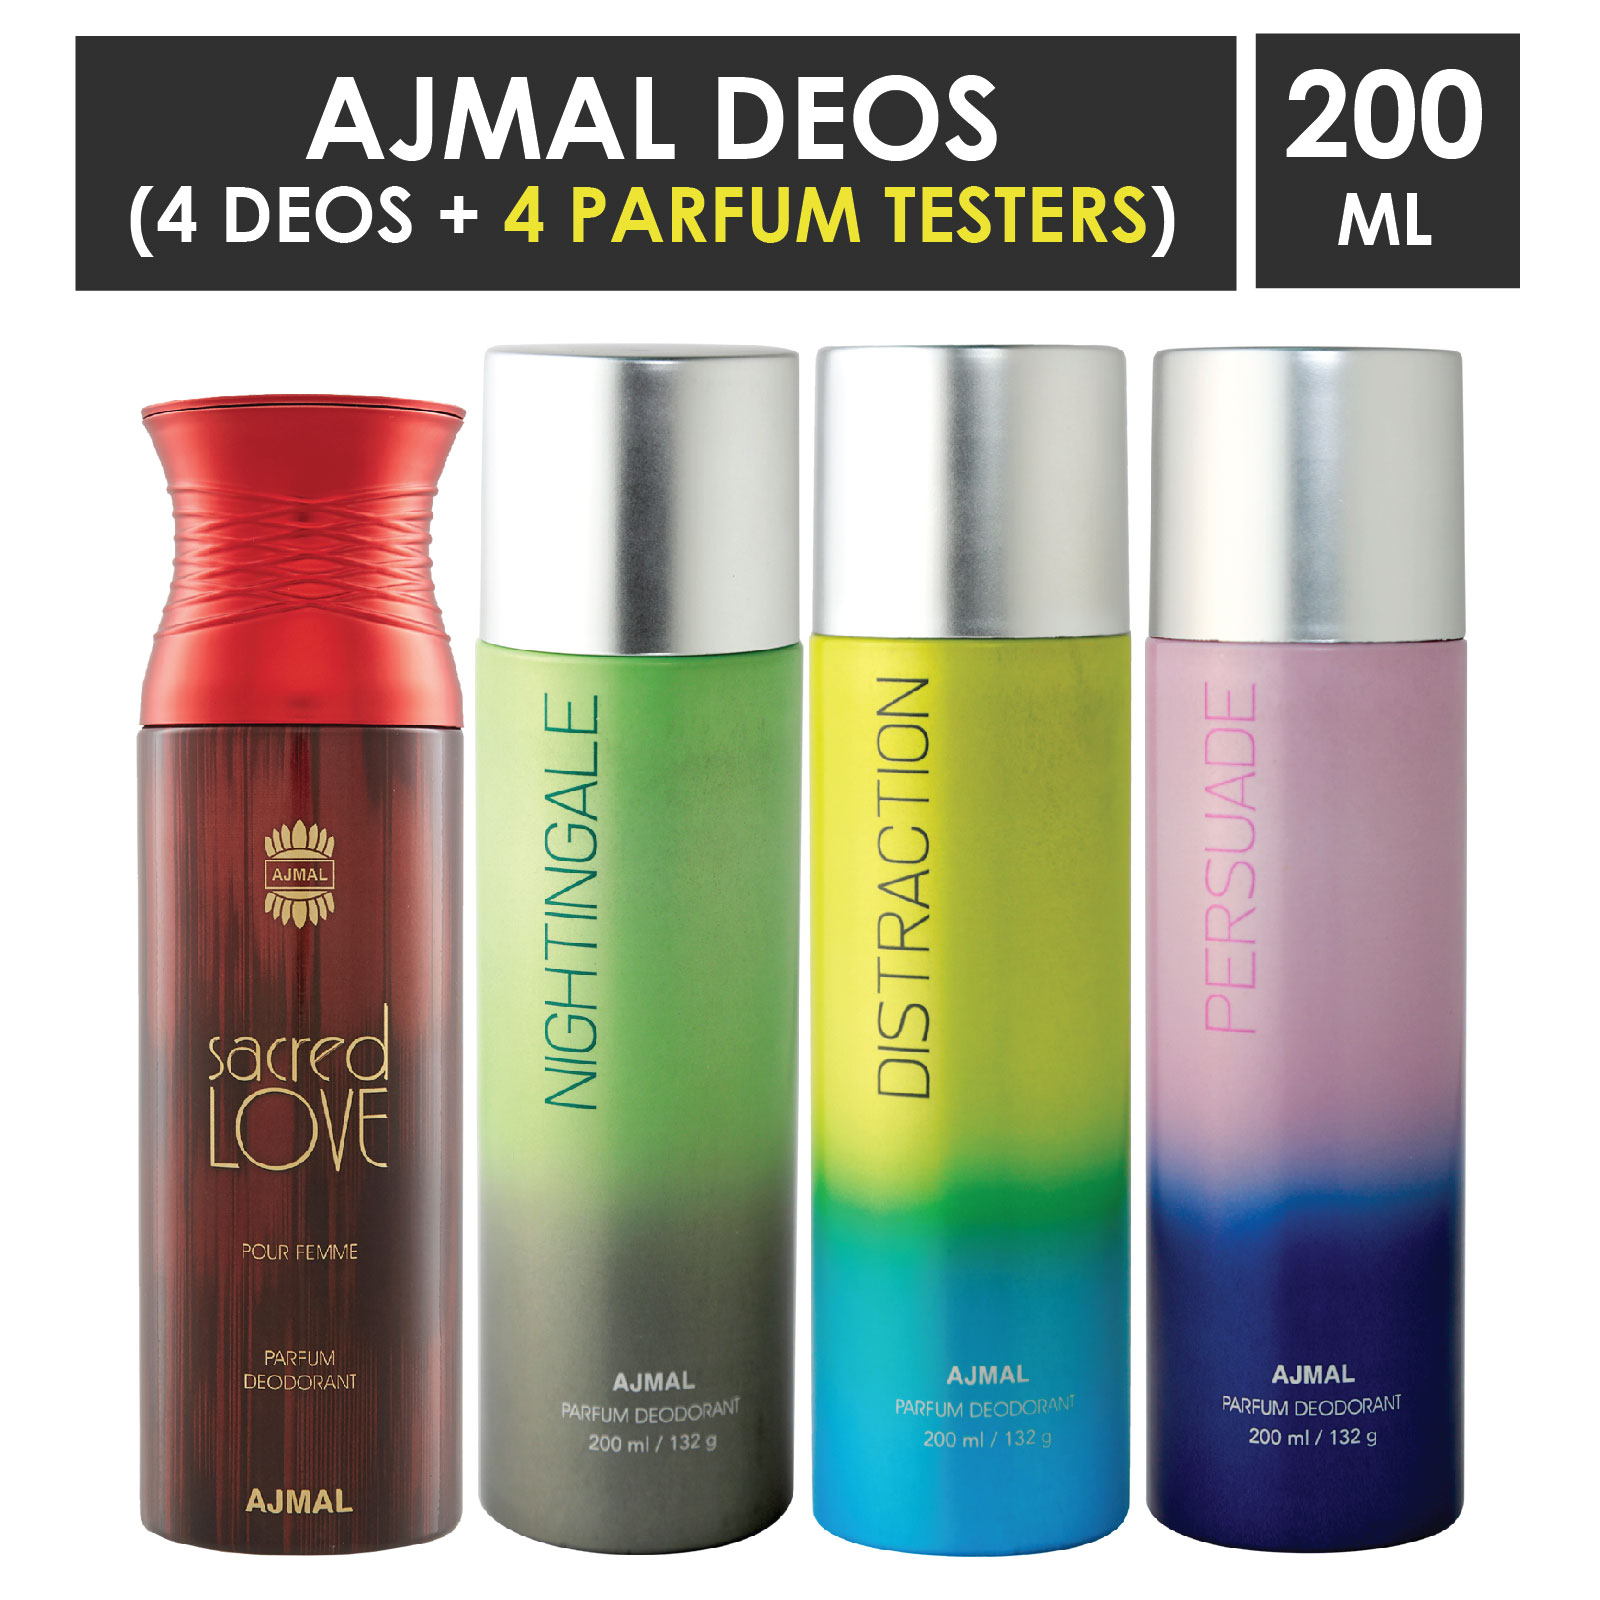 Ajmal | Ajmal 1 Sacred Love for Women, 1 Nightingale, 1 Distraction and 1 Persuade for Men & Women High Quality Deodorants each 200ML Combo pack of 4 (Total 800ML) + 4 Parfum Testers